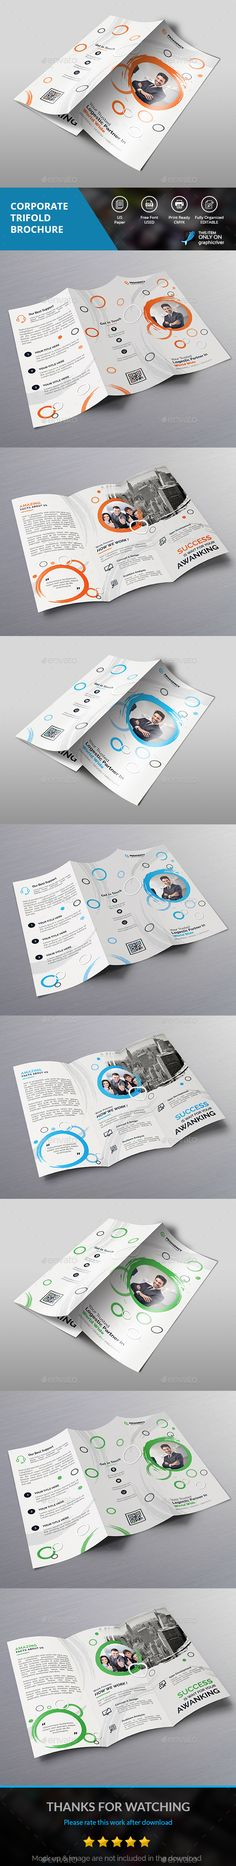 Corporate Trifold - #Corporate #Brochures Download here: https://graphicriver.net/item/corporate-trifold/19191144?ref=alena994